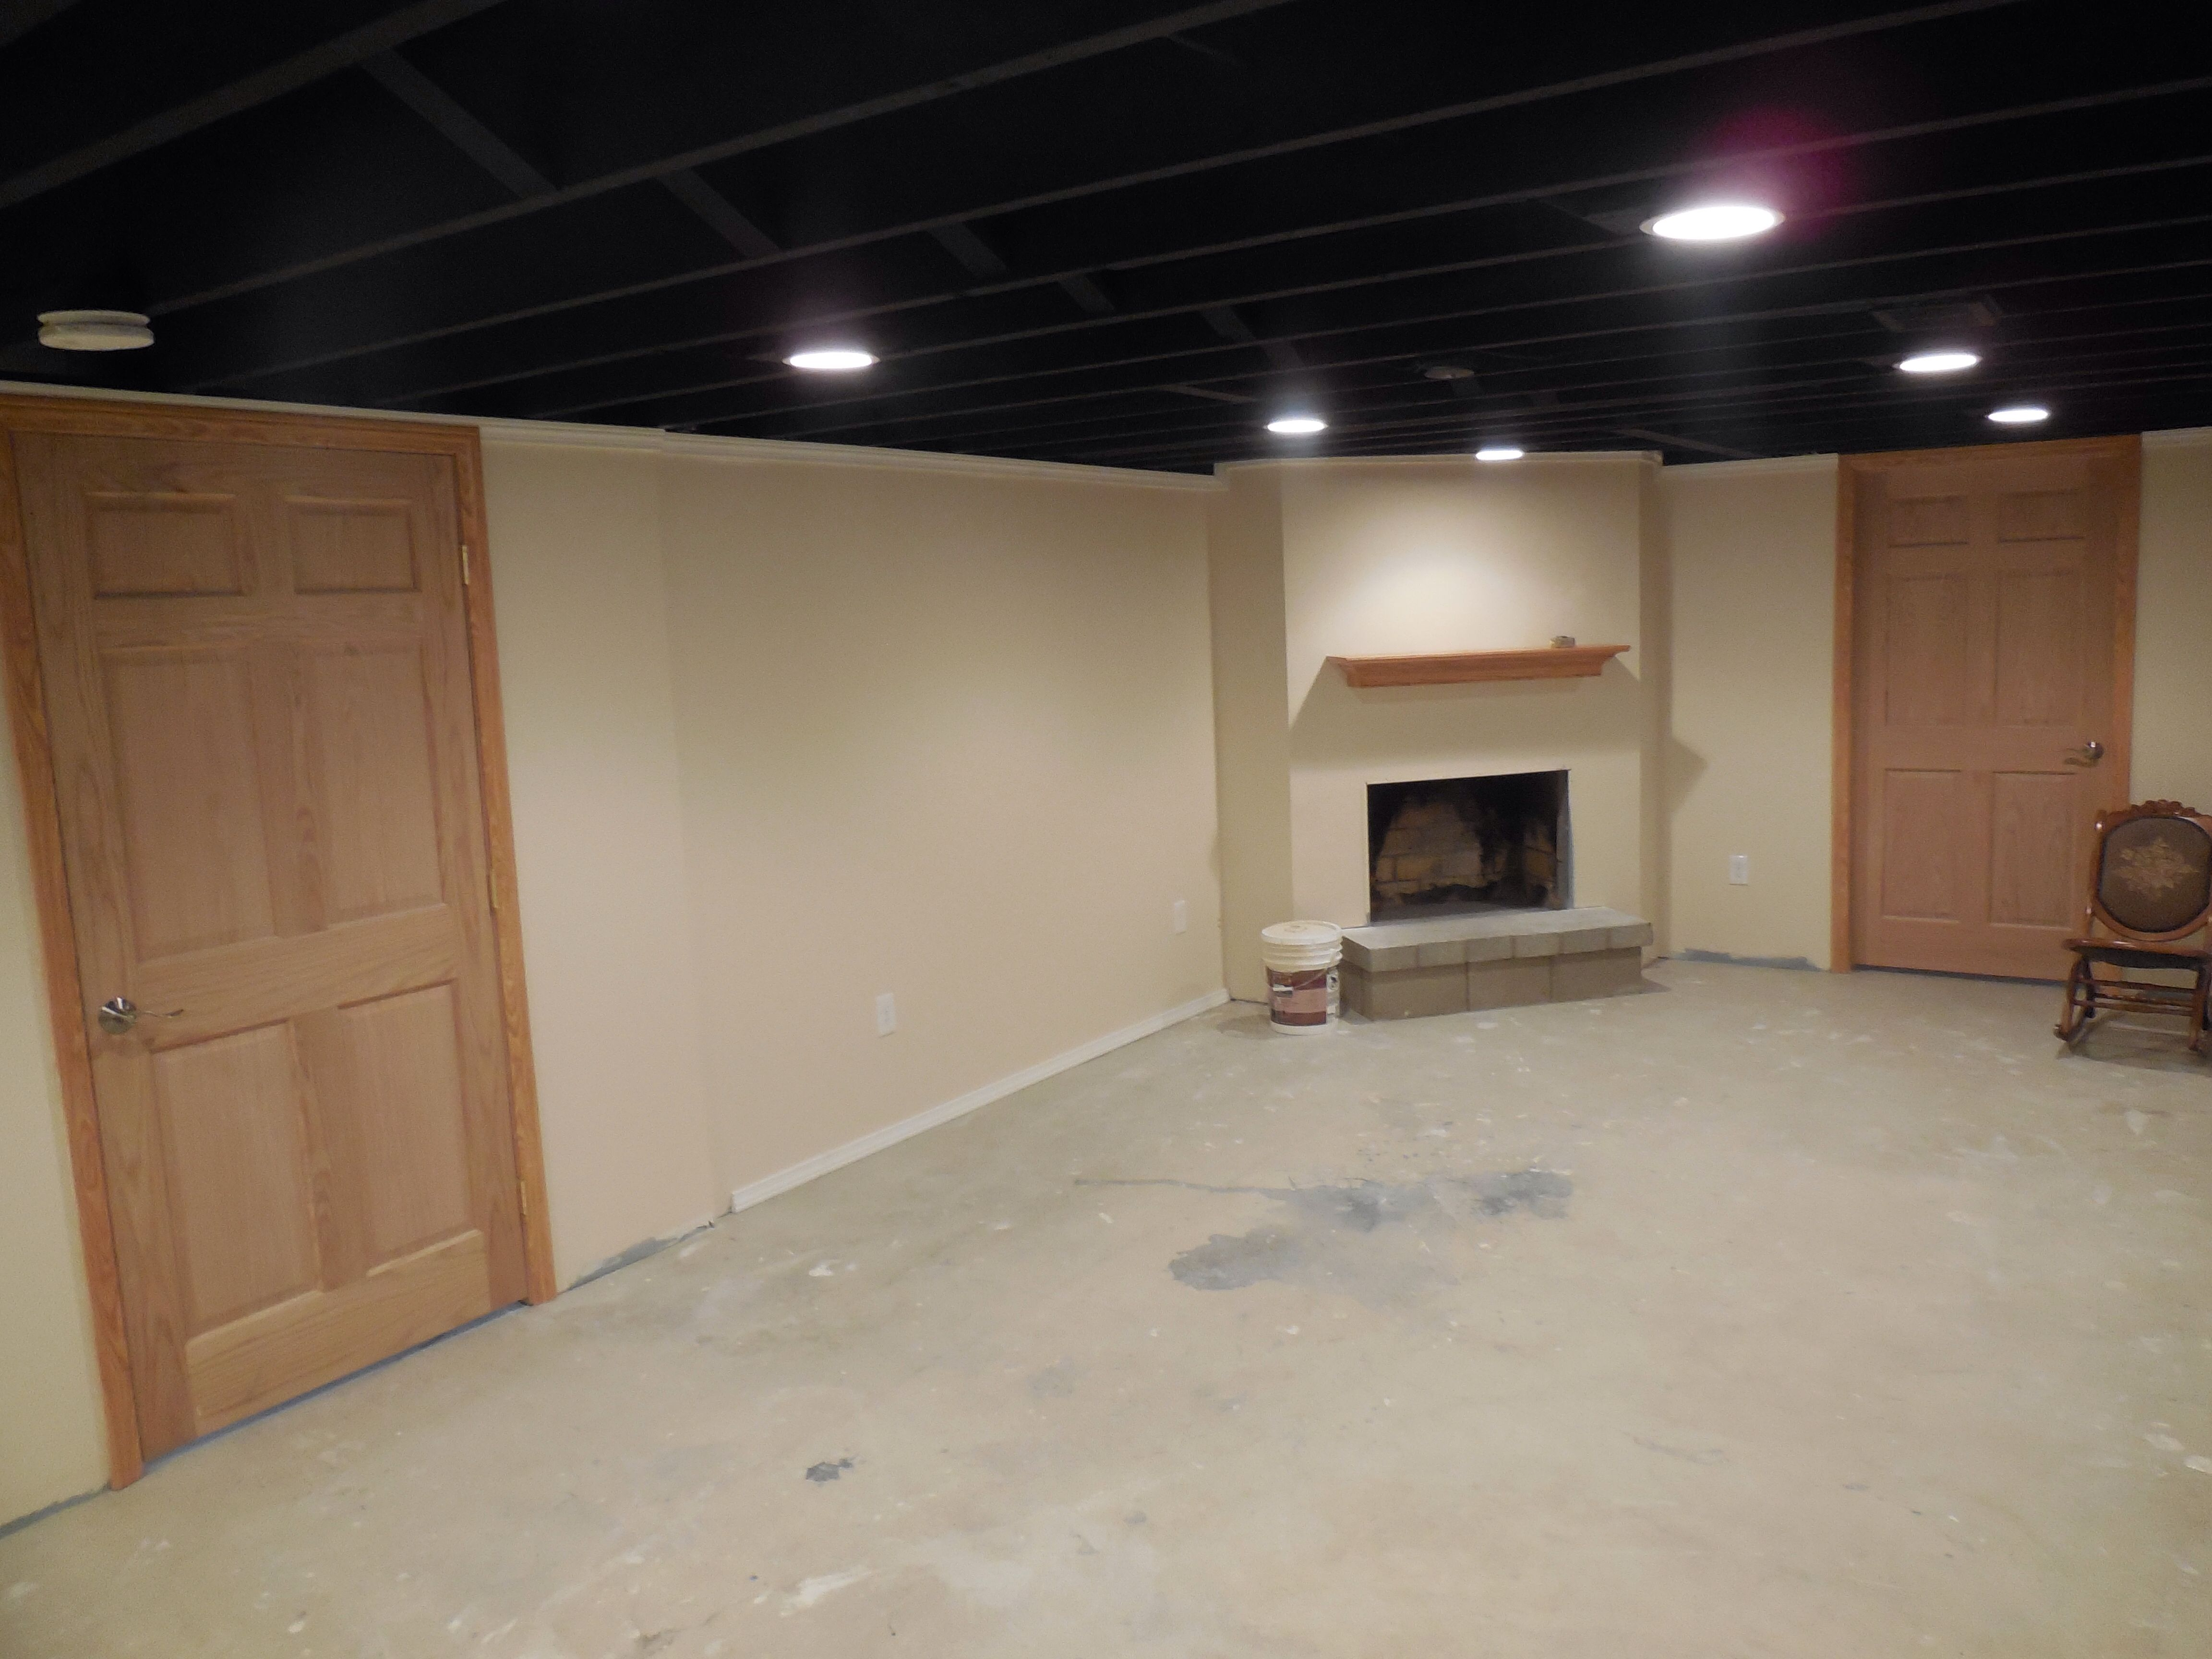 Basement Remodeling Ideas Basement Doctor - Basement doctor